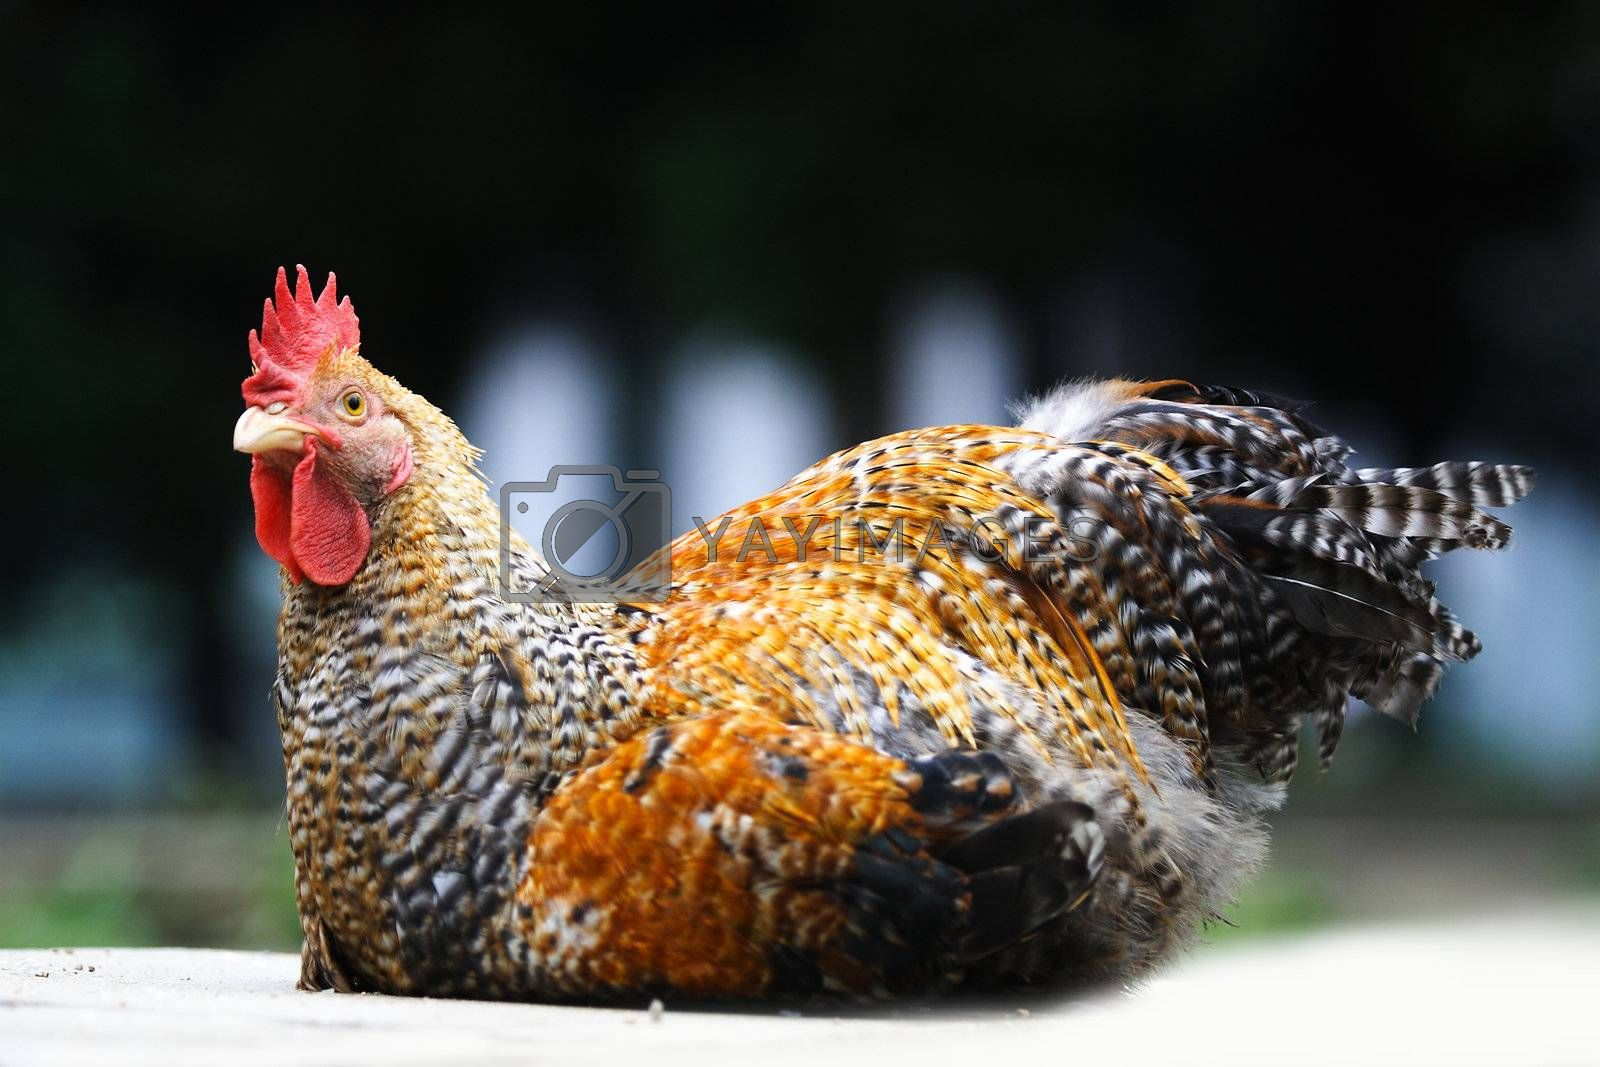 Animals poultry